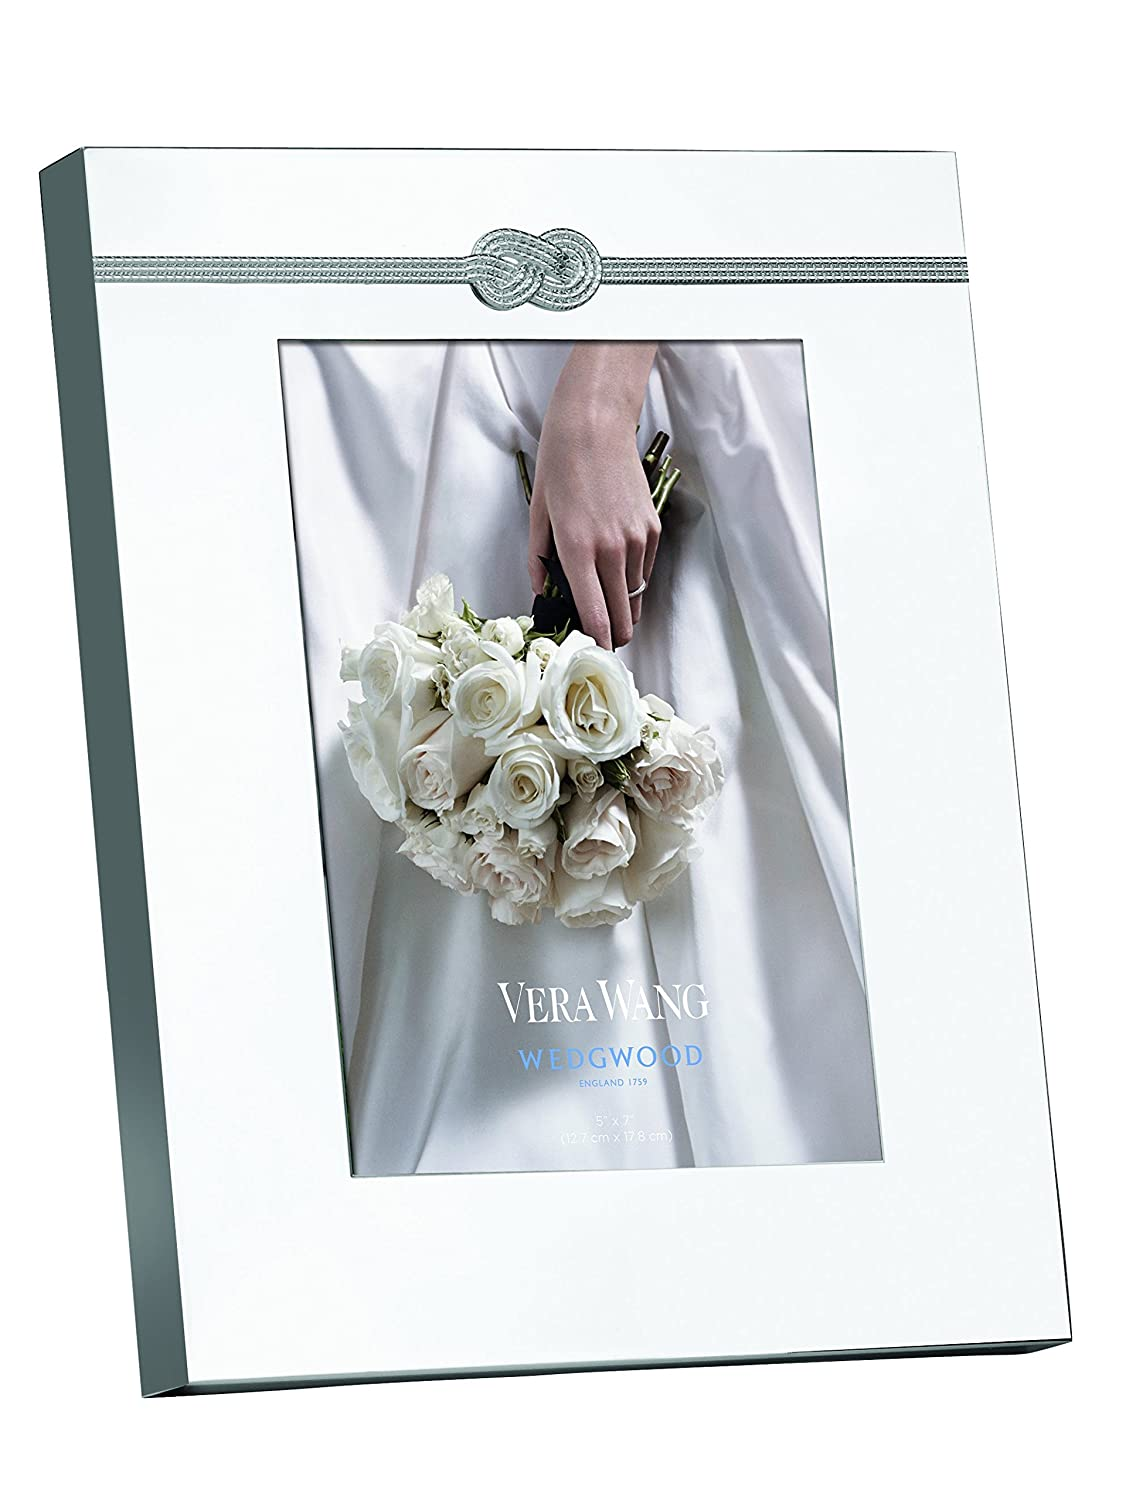 Amazon wedgwood vera wang vera infinity frame 5 by 7 inch amazon wedgwood vera wang vera infinity frame 5 by 7 inch home kitchen jeuxipadfo Image collections